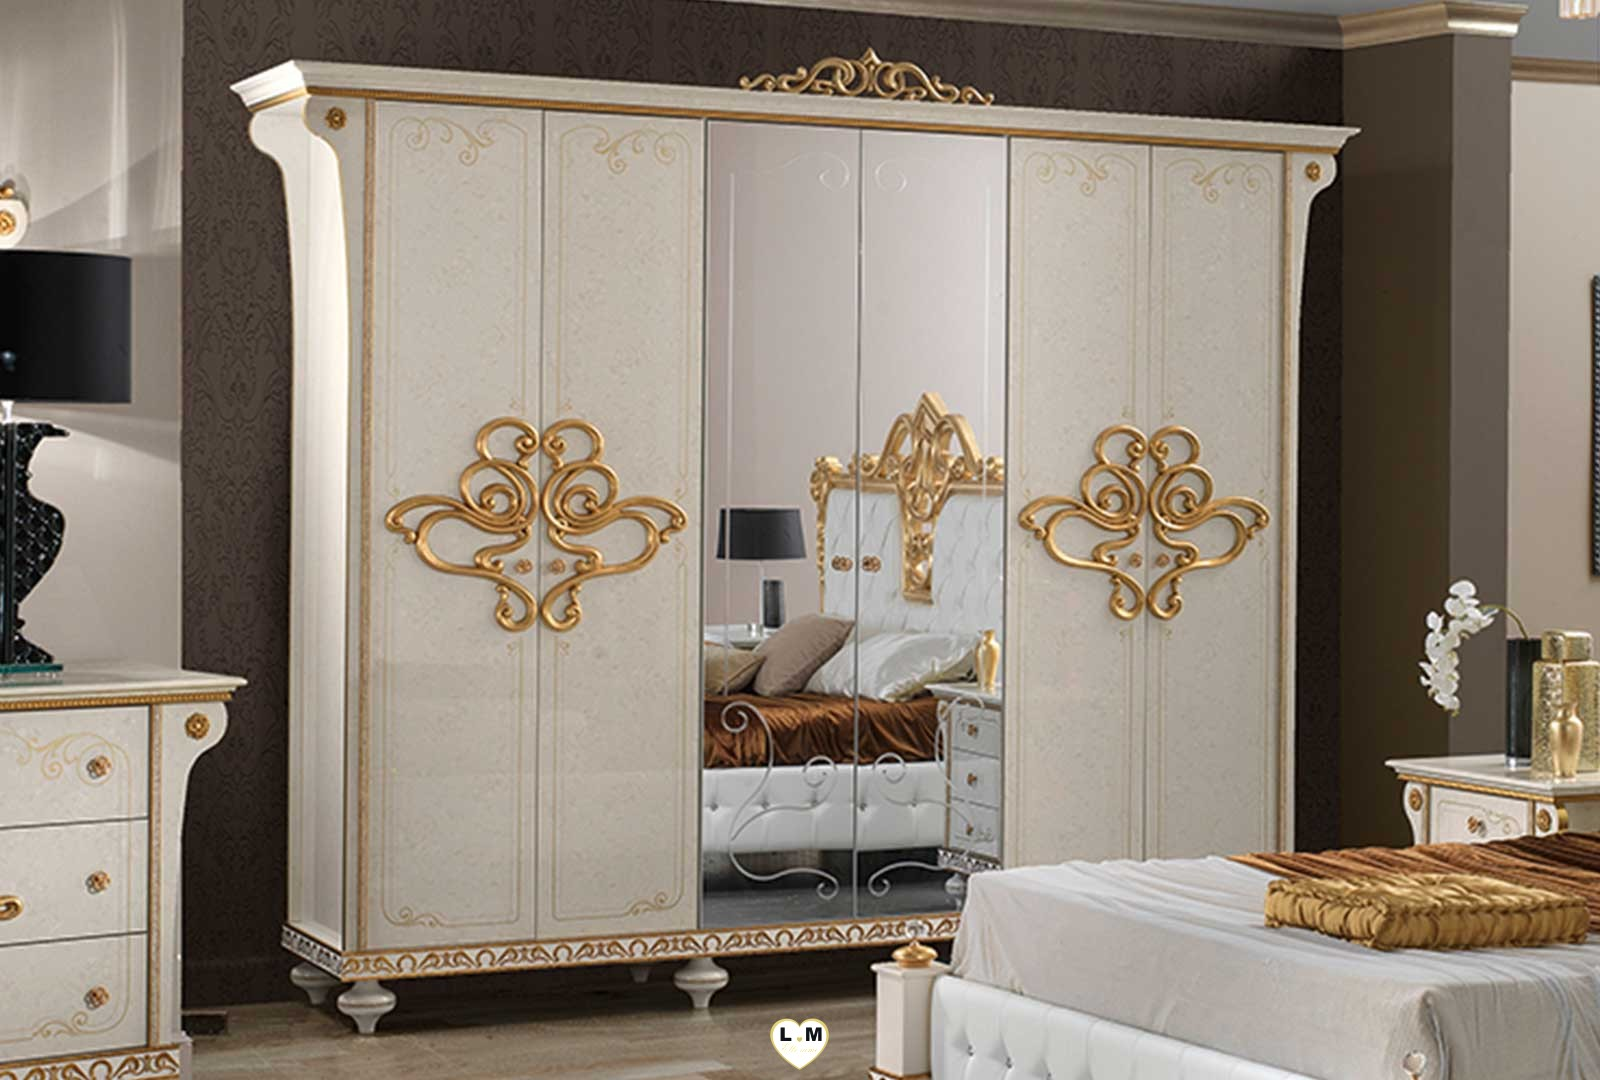 chambre coucher style baroque cheap charmant chambre coucher style baroque avec jolie chambre. Black Bedroom Furniture Sets. Home Design Ideas